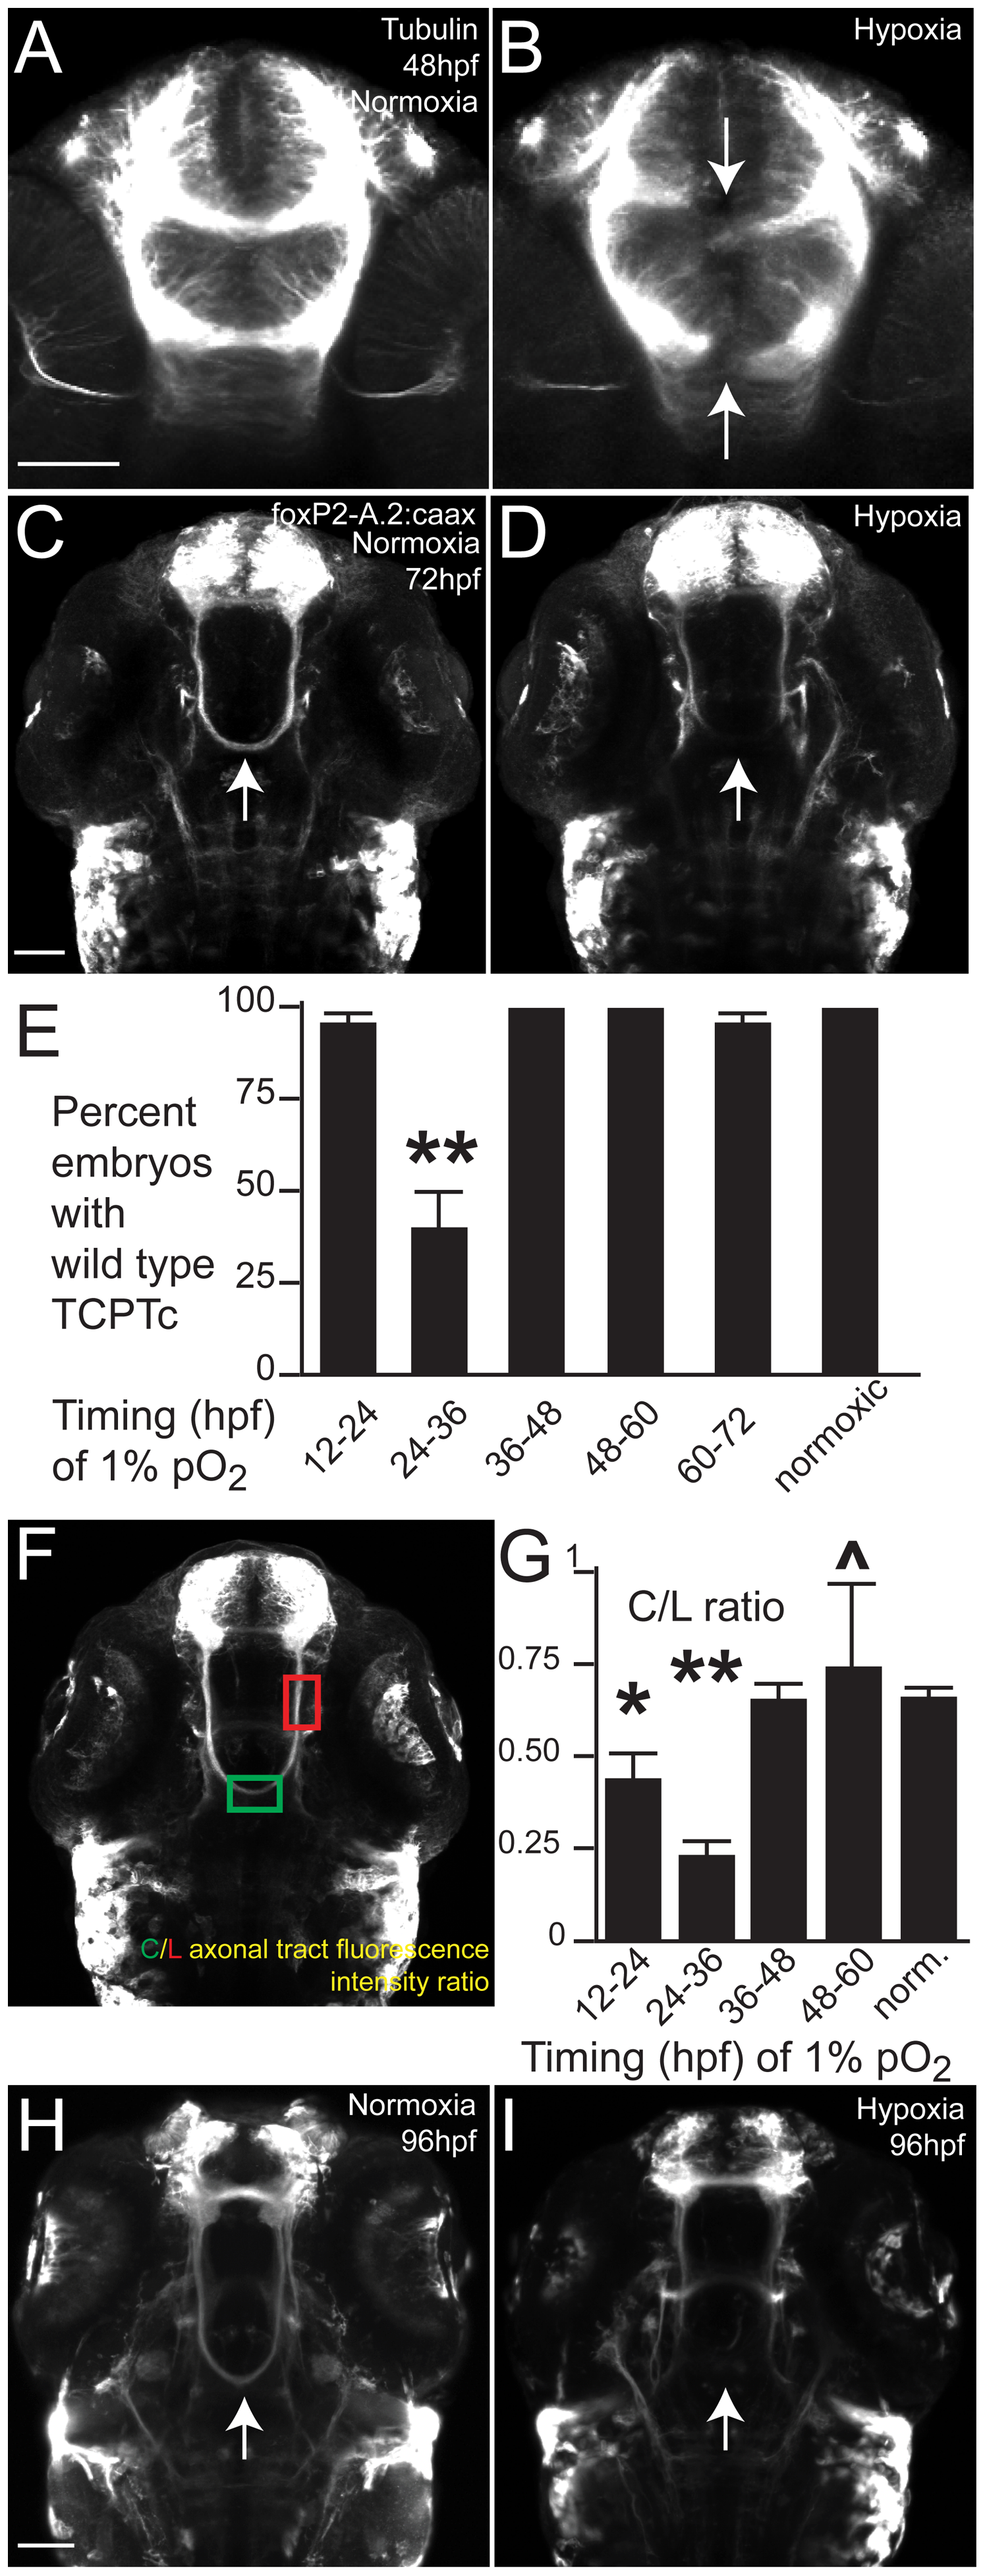 Hypoxia disrupts axon pathfinding in the developing CNS.